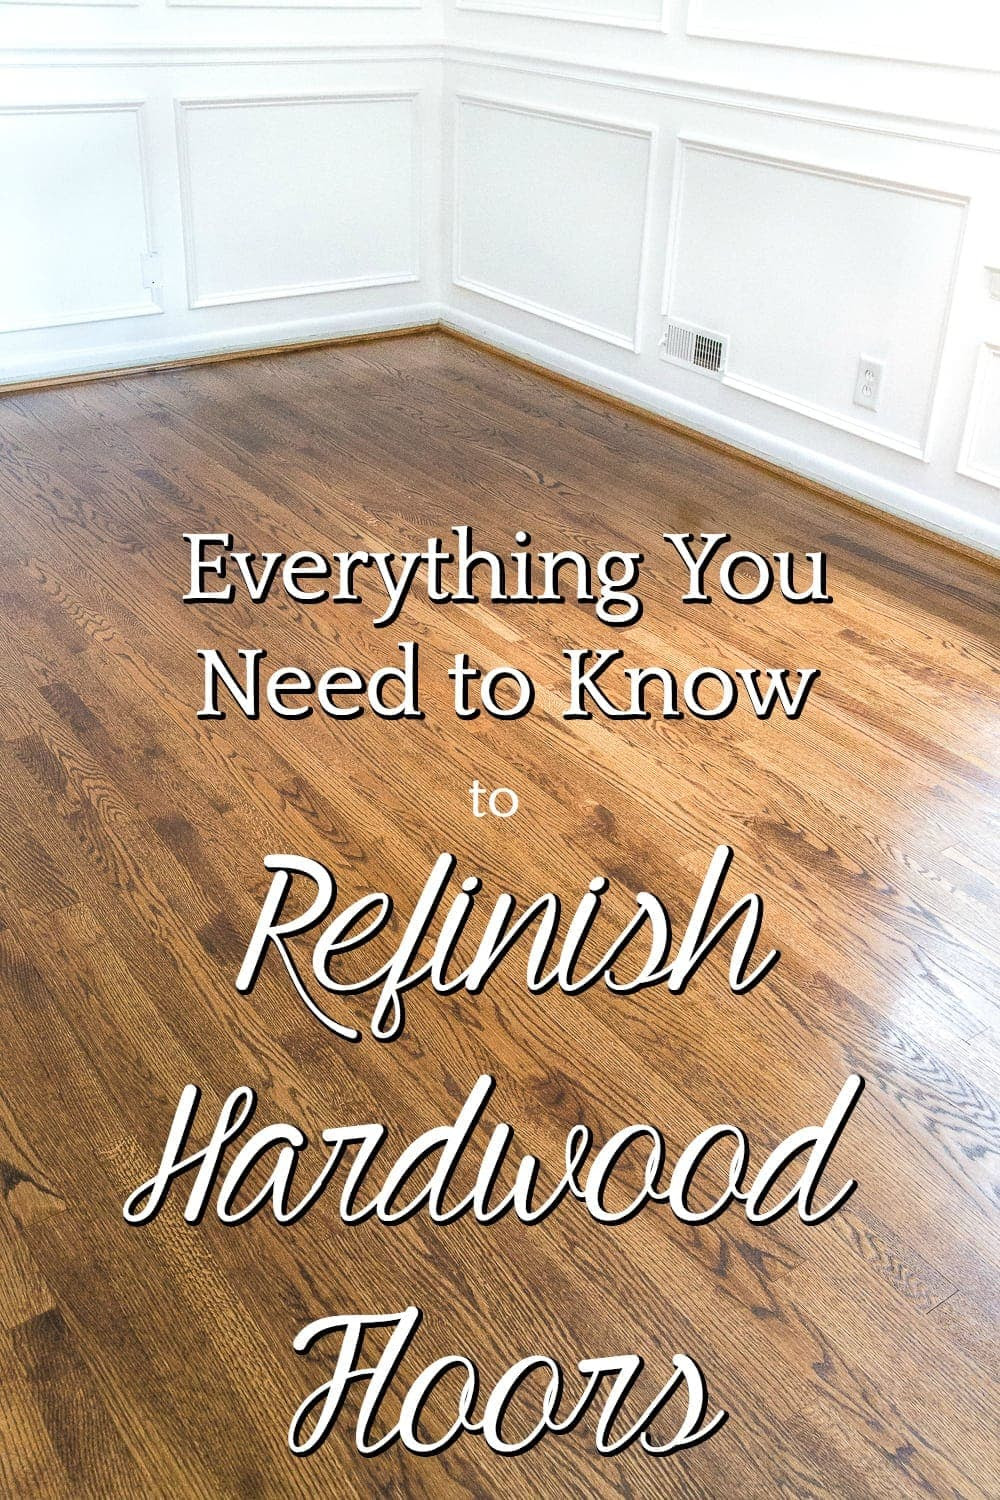 Everything You Ever Needed to Know to Refinish Hardwood Floors | A step-by-step tutorial for refinishing an existing hardwood floor, including a complete list of materials from @minwax and tips for a seamless process. #sponsored